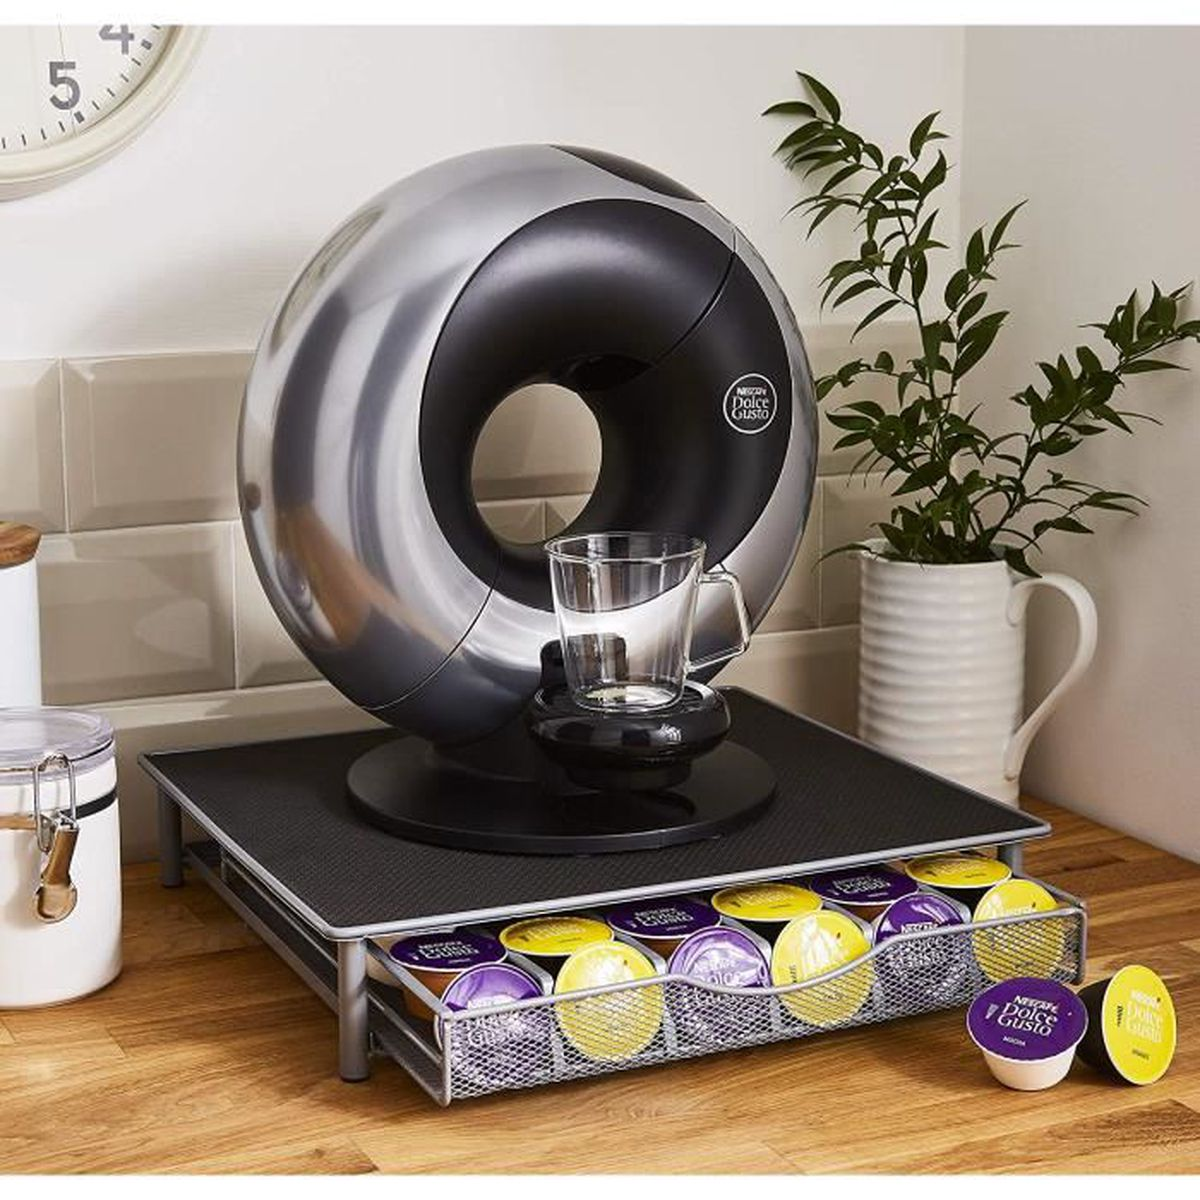 Tiroire Rangement Capsules Compatibles Dolce Gusto Achat Vente Cafetiere Theiere Cdiscount